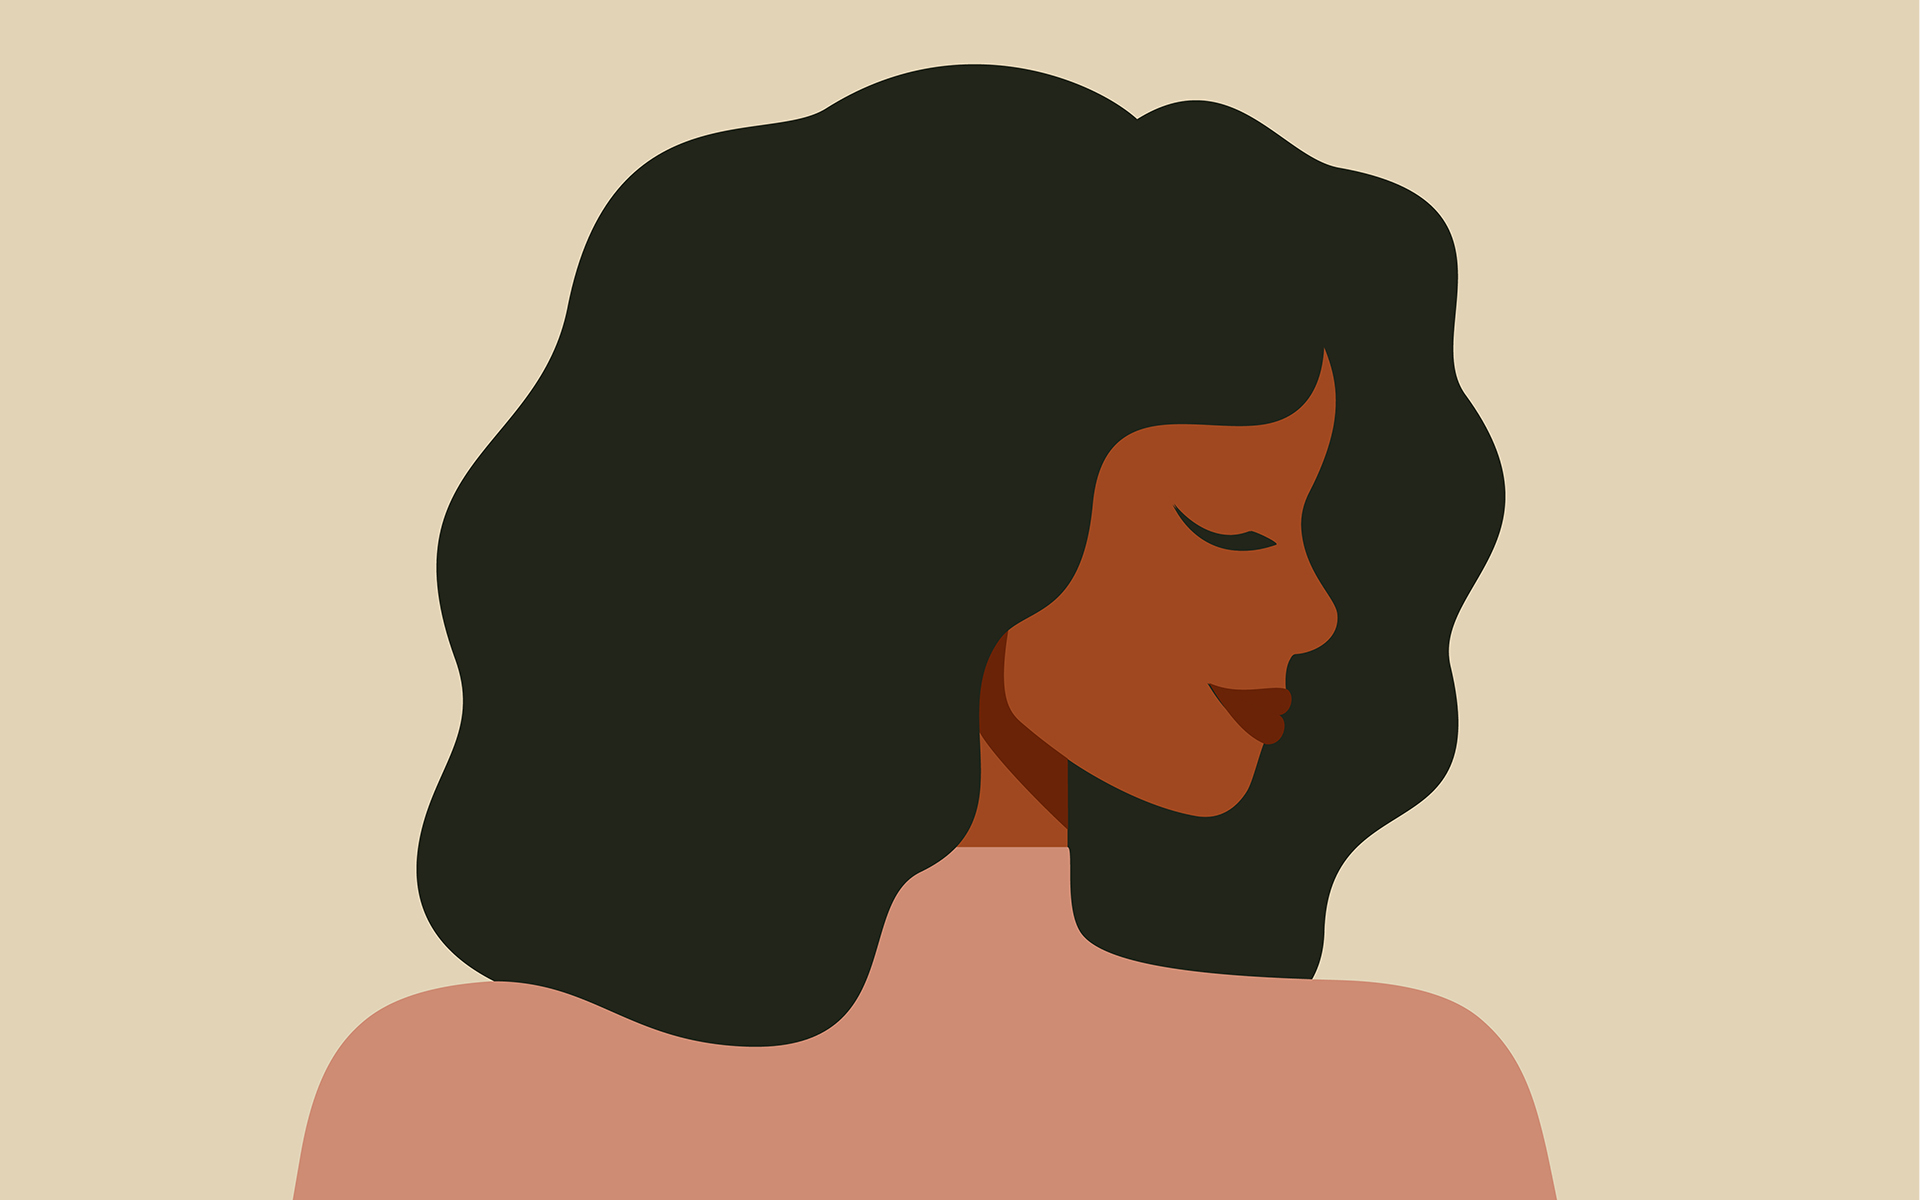 5 Benefits of Mindfulness for BIWOC - Portrait of a Black woman in profile